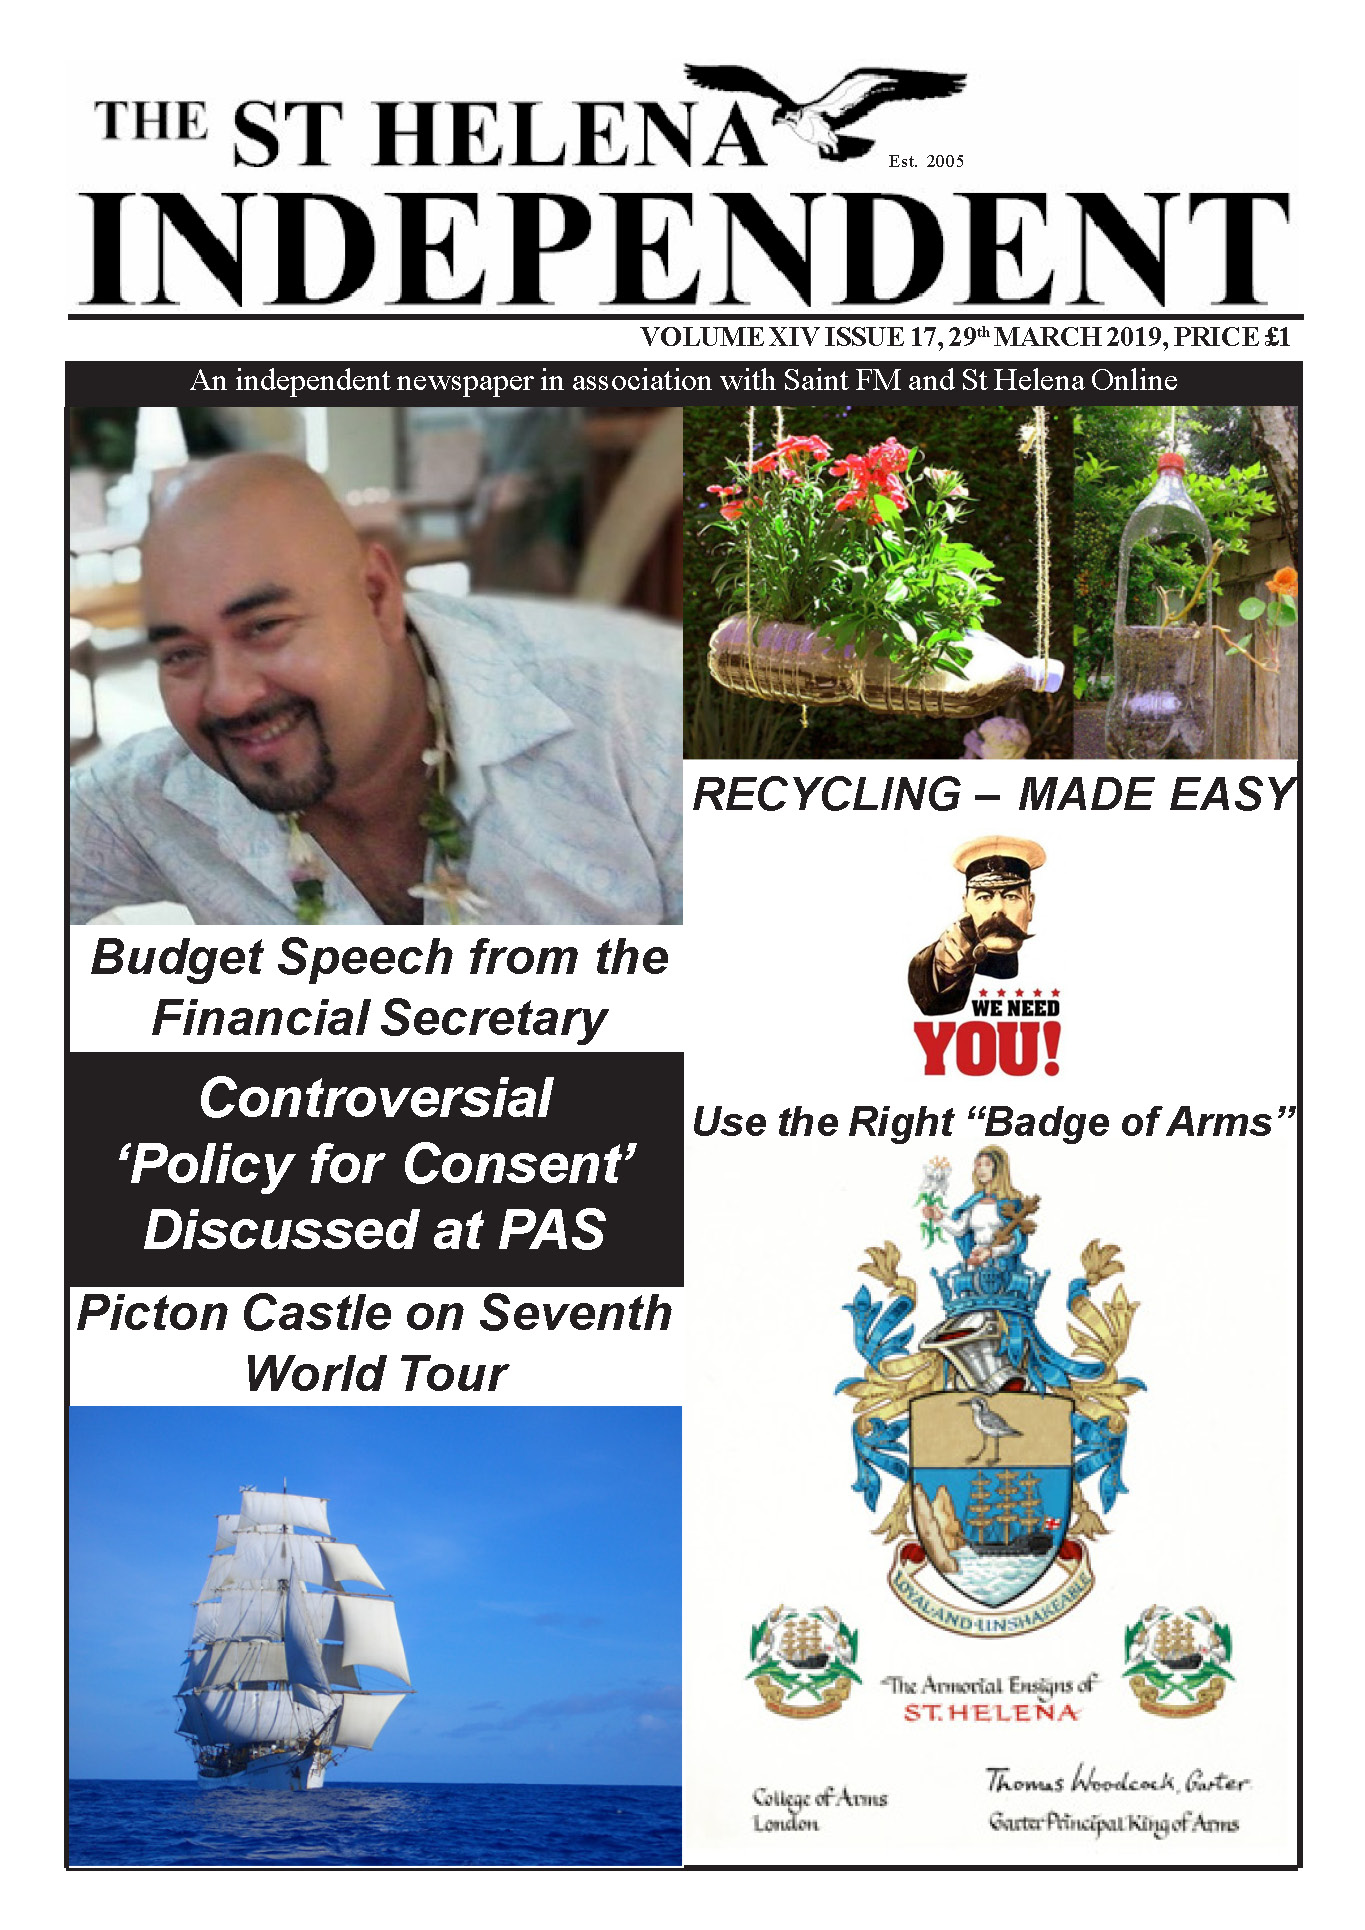 St Helena Independent 20190329